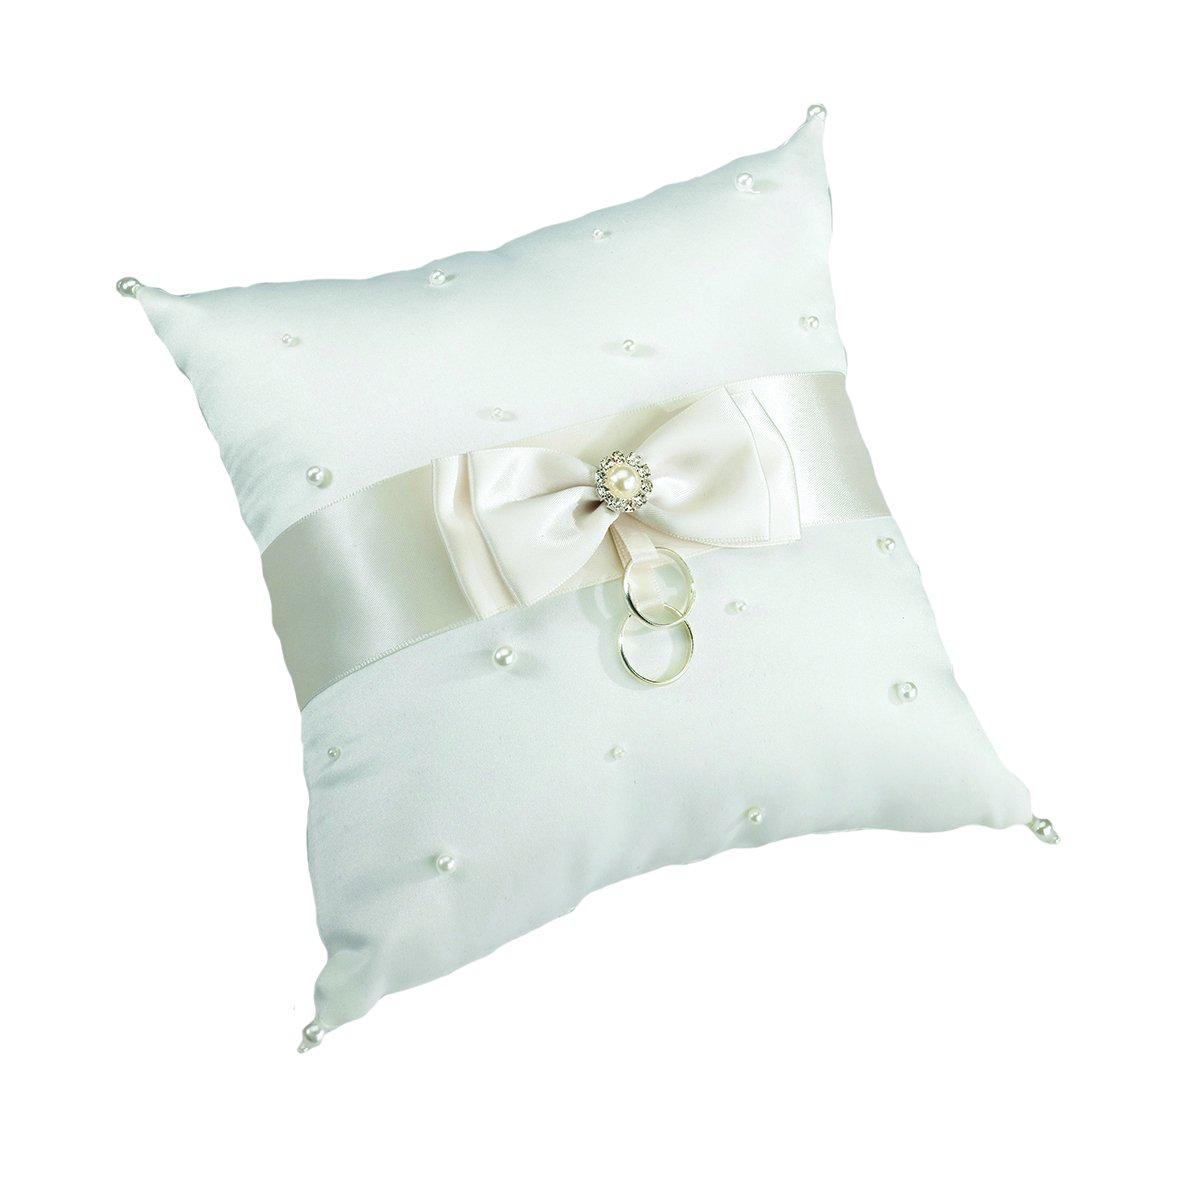 amazoncom lillian rose classic ivory satin pearl wedding ring pillow home kitchen - Wedding Ring Pillow